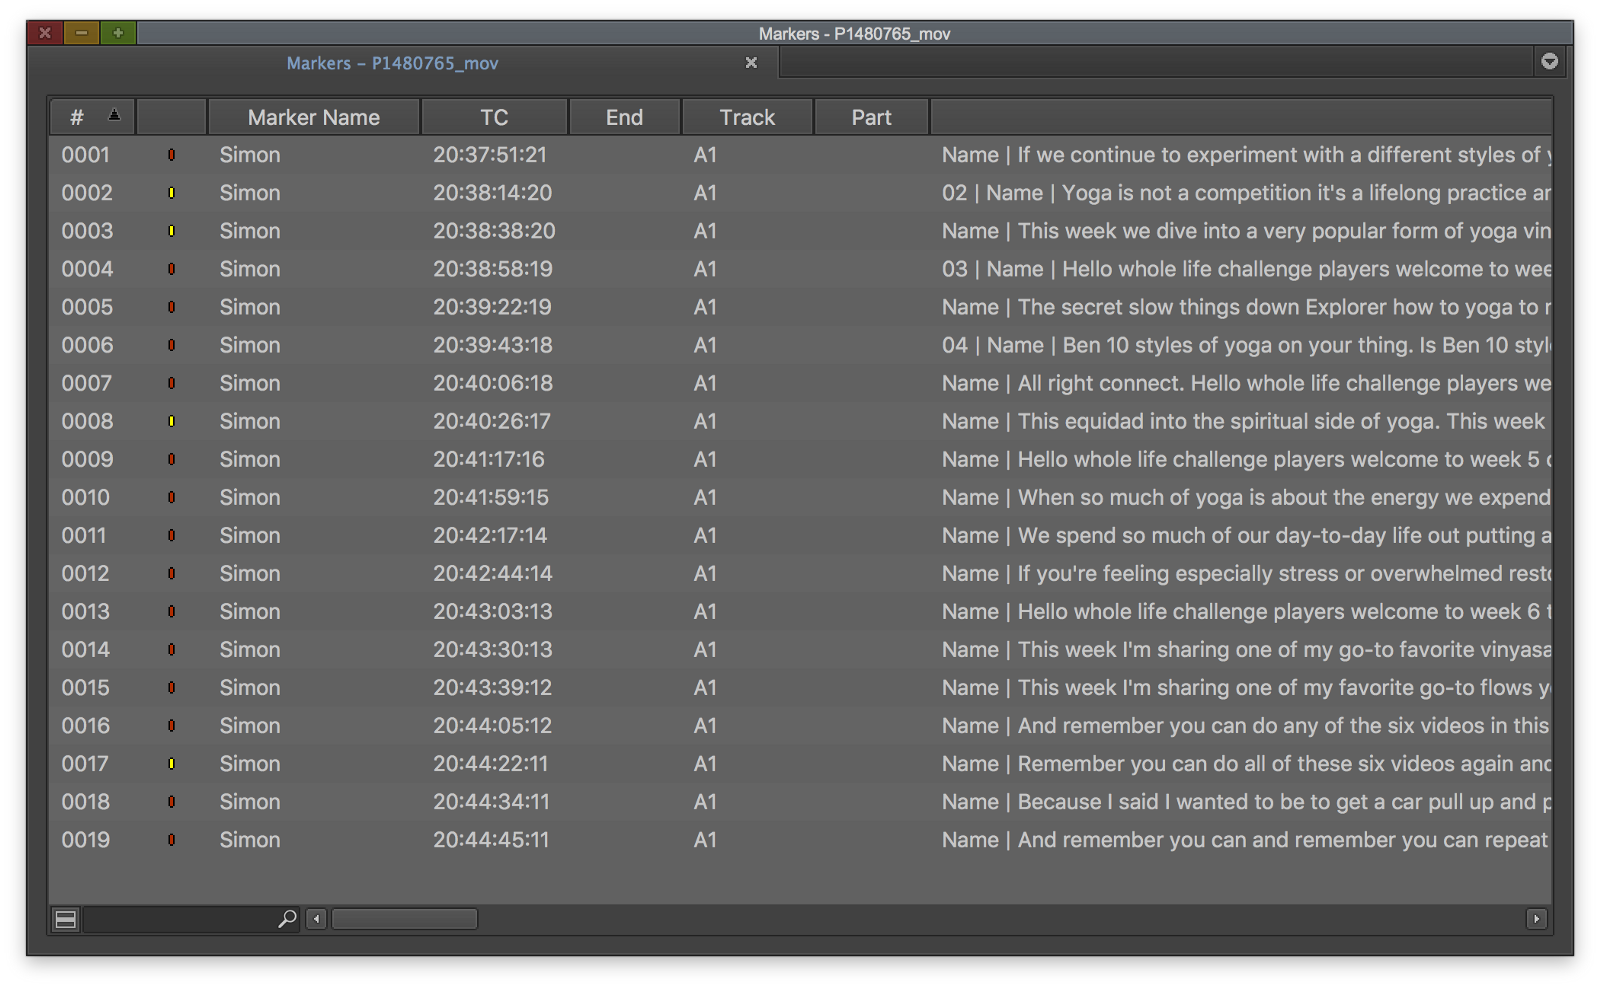 The Avid comments field will contain, in this order: note, speaker, transcript.